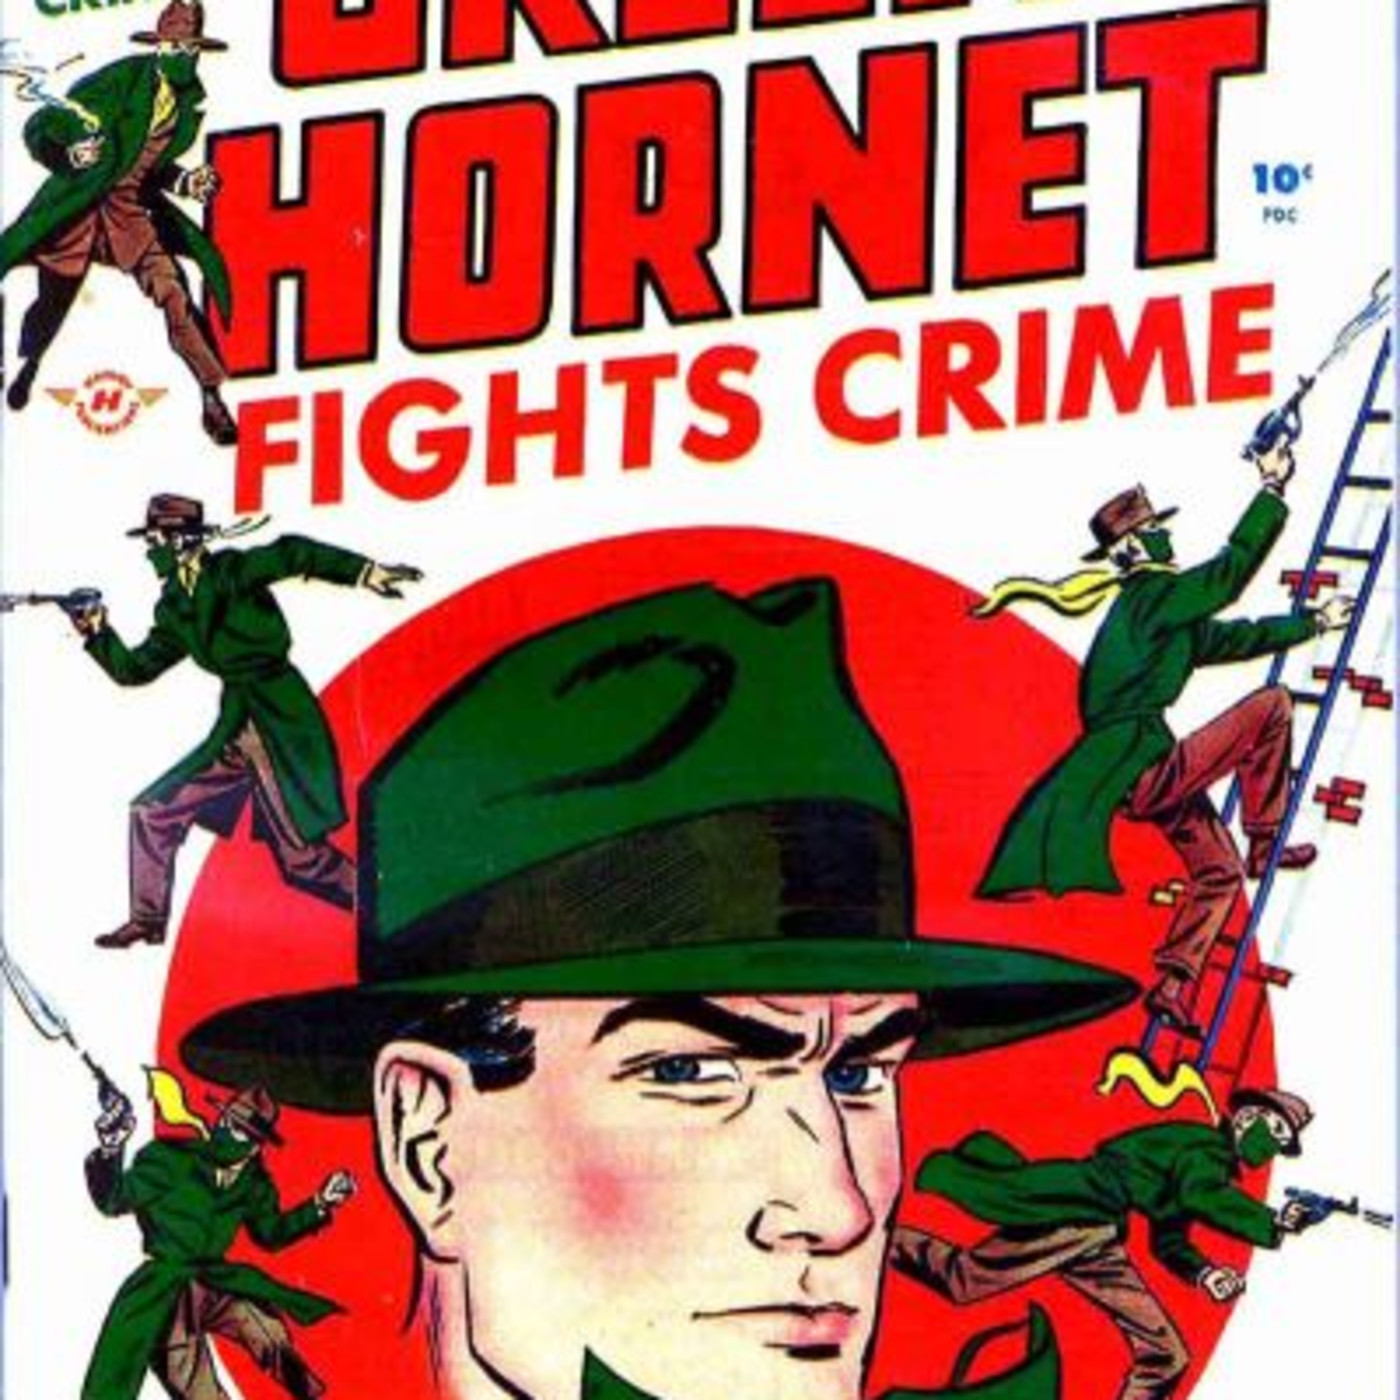 The Green Hornet - 00 - 451206TheVoice